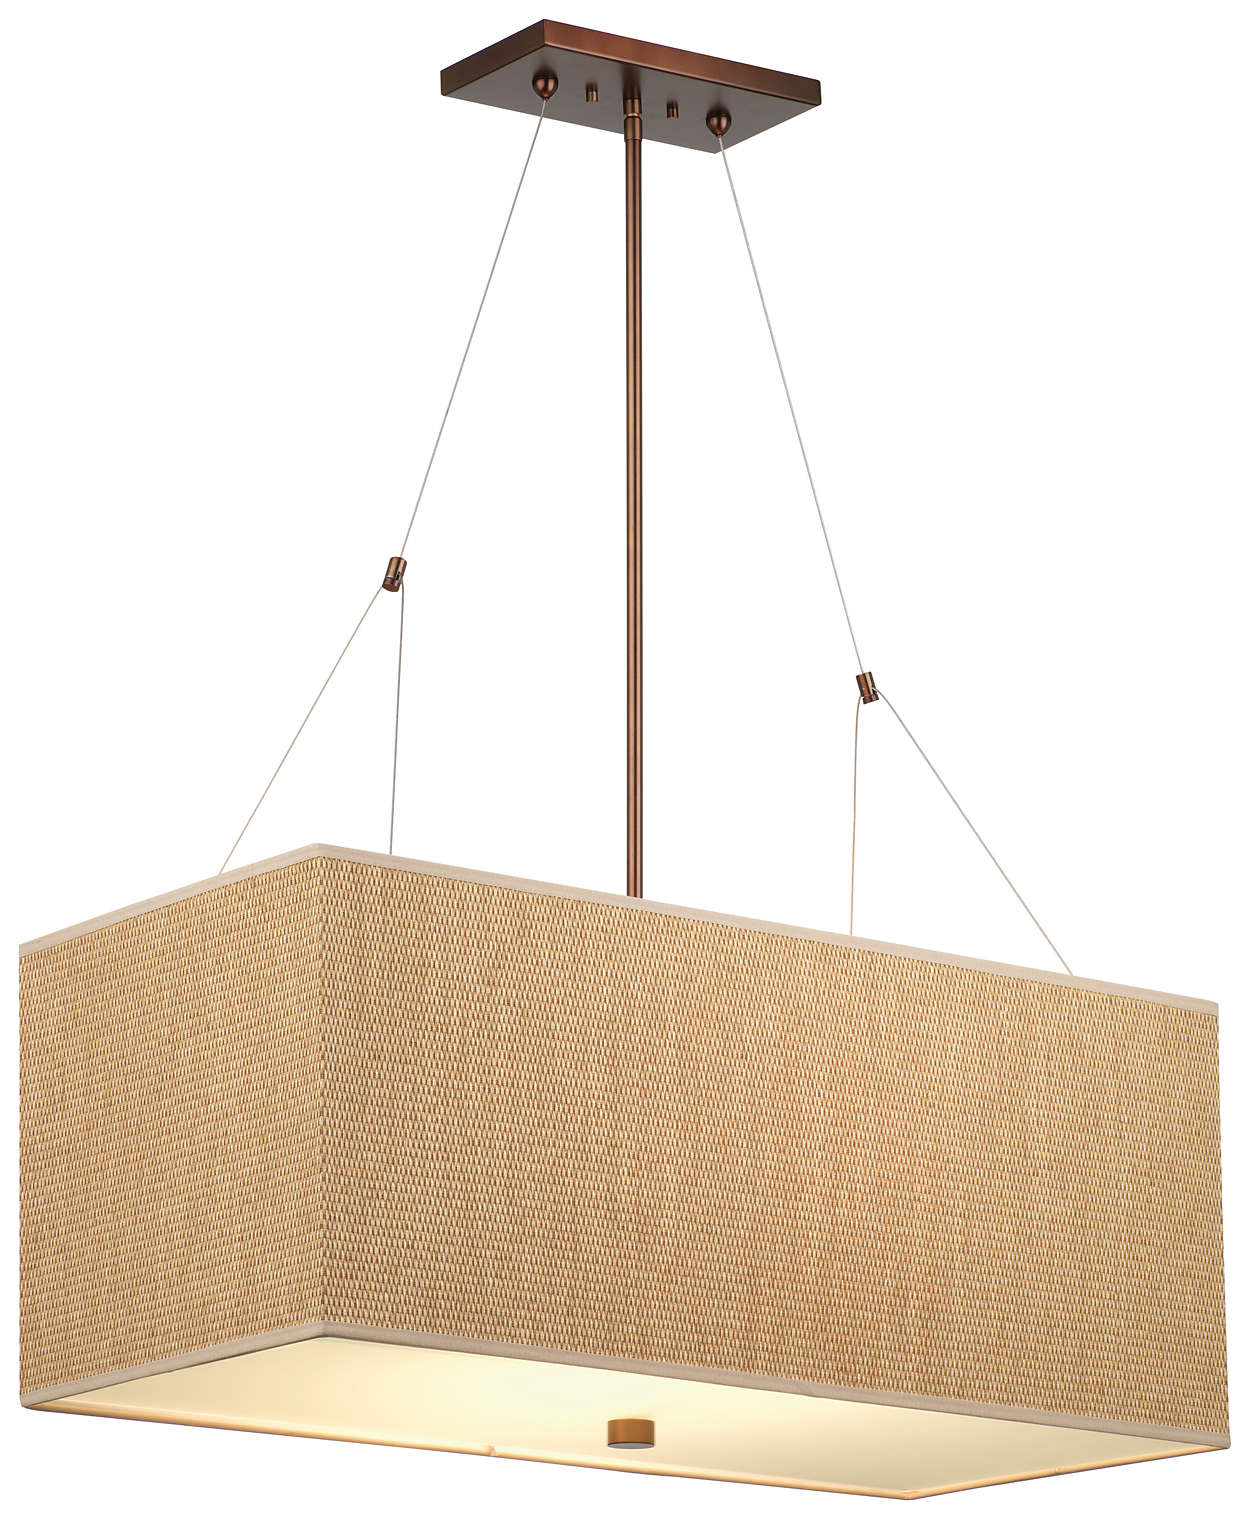 Alexis 3-light Pendant in Merlot Bronze finish